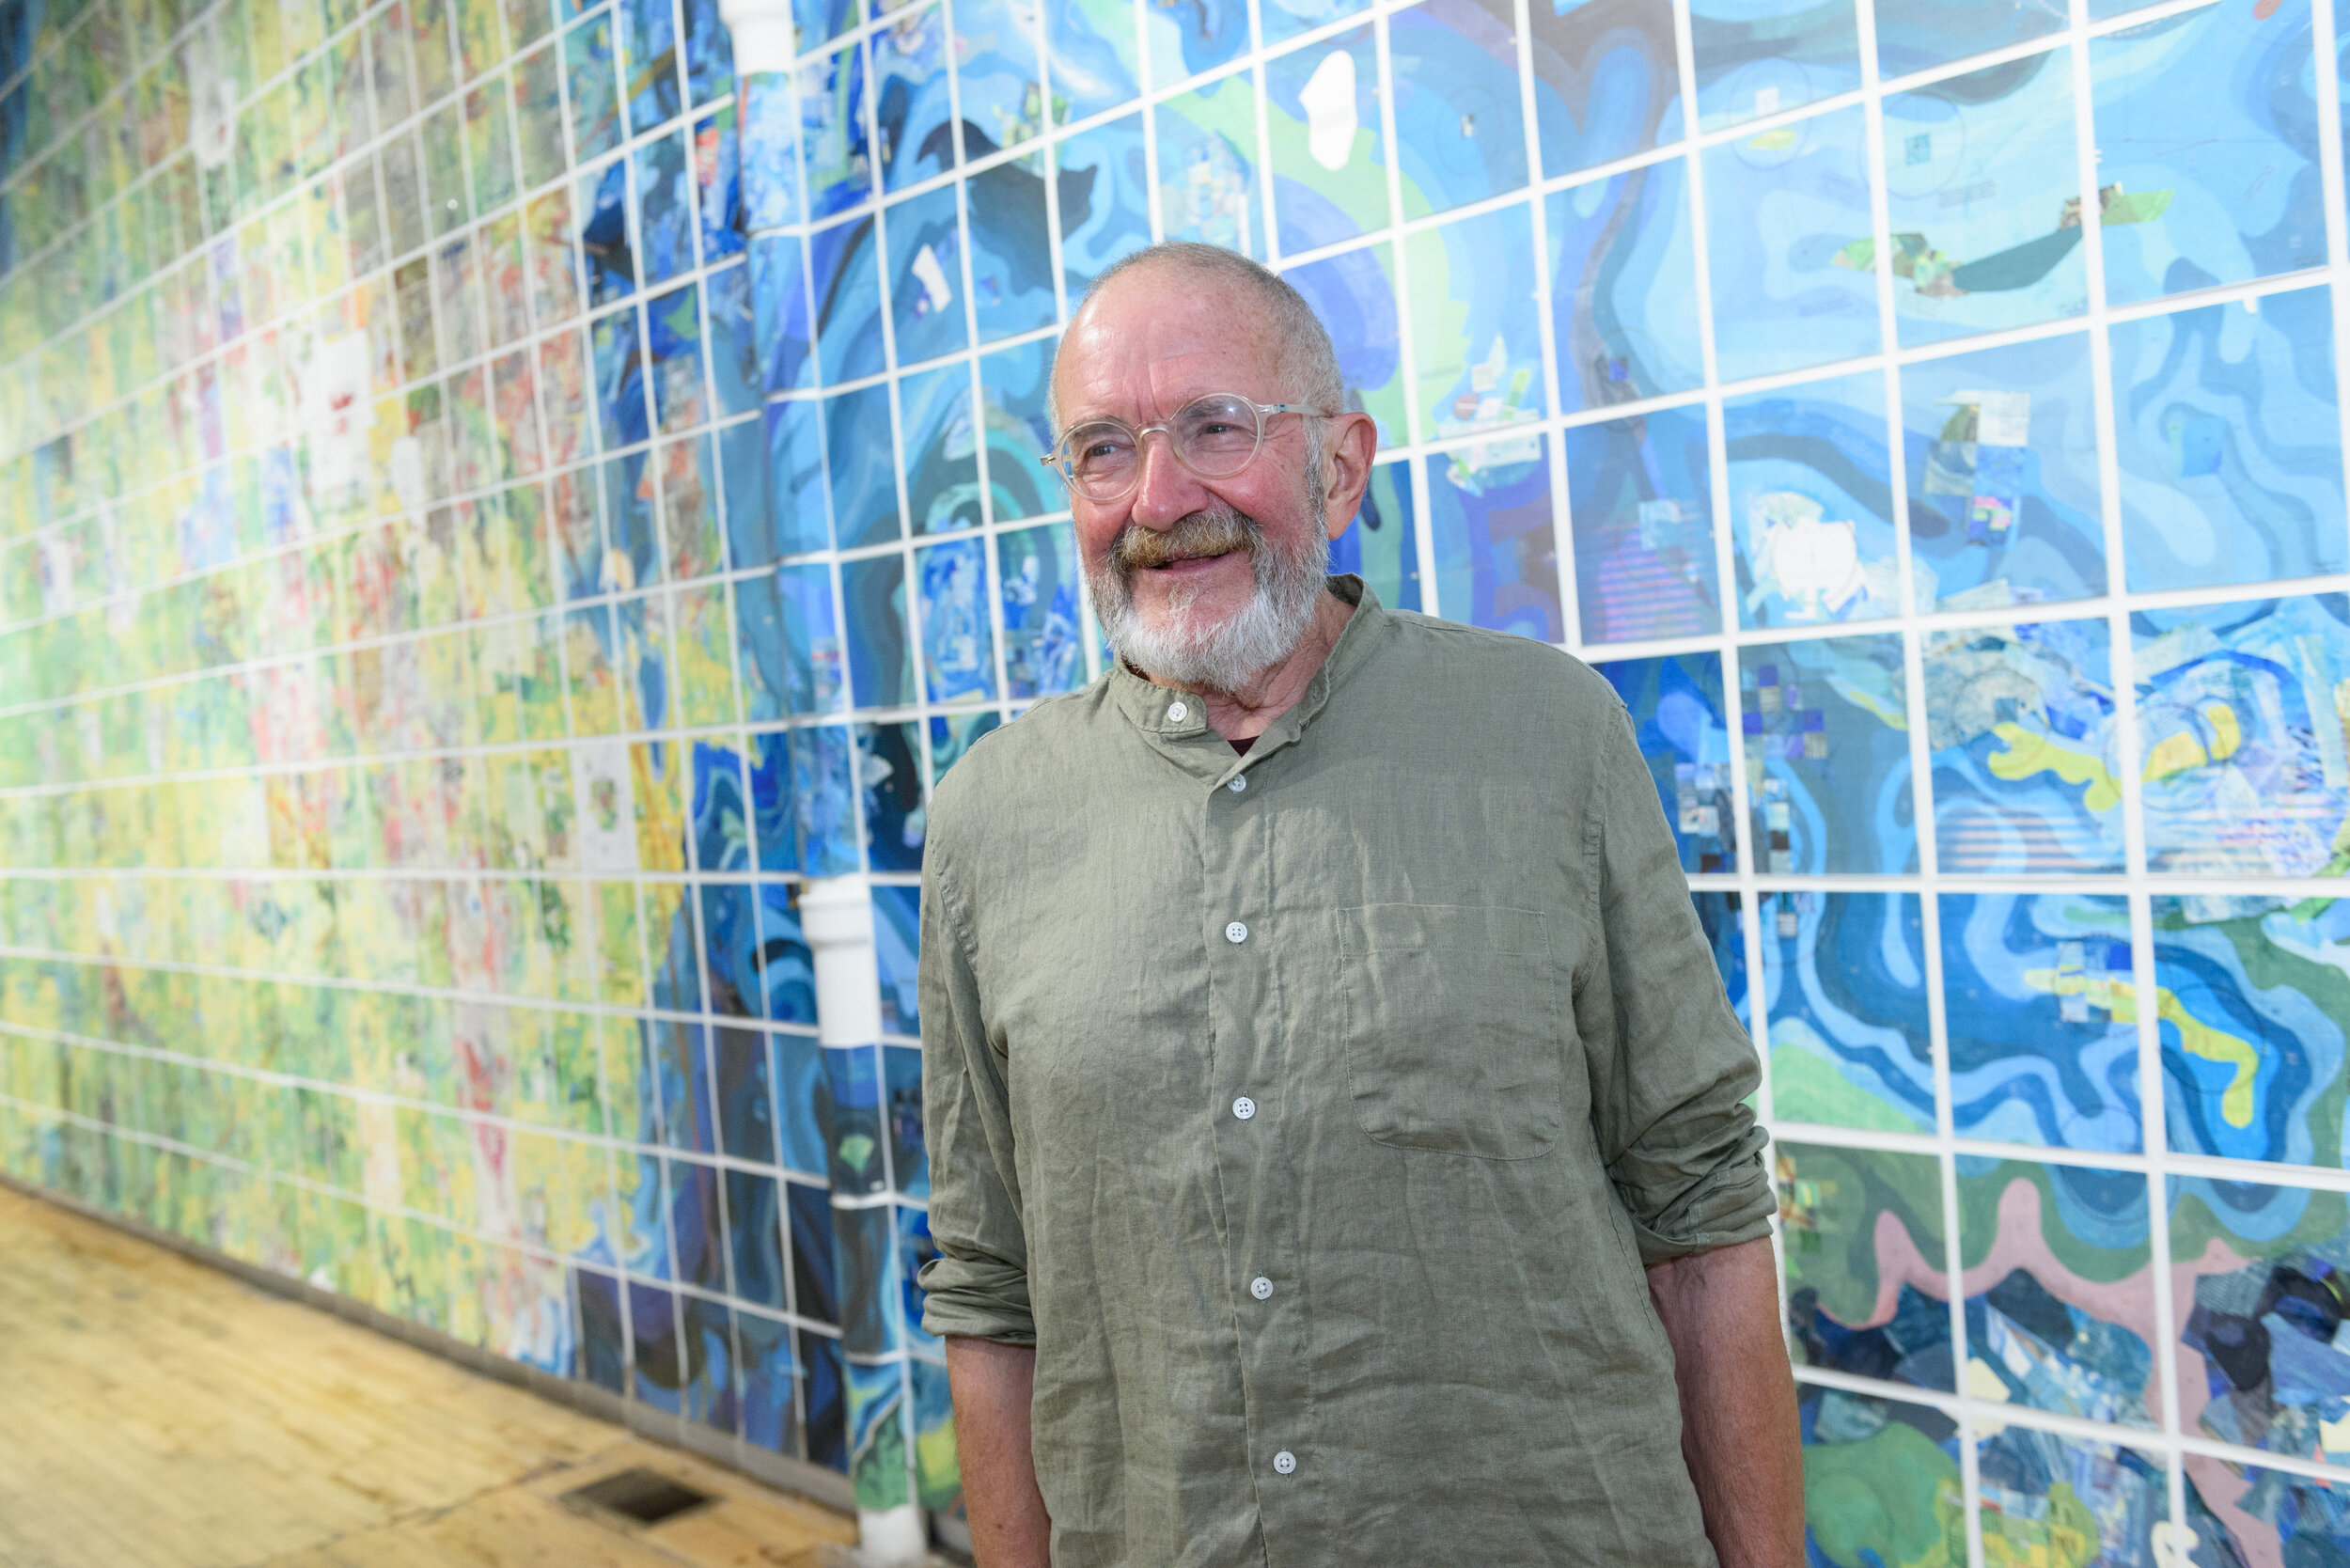 Mapping Your World: Workshop with Artist Jerry Gretzinger